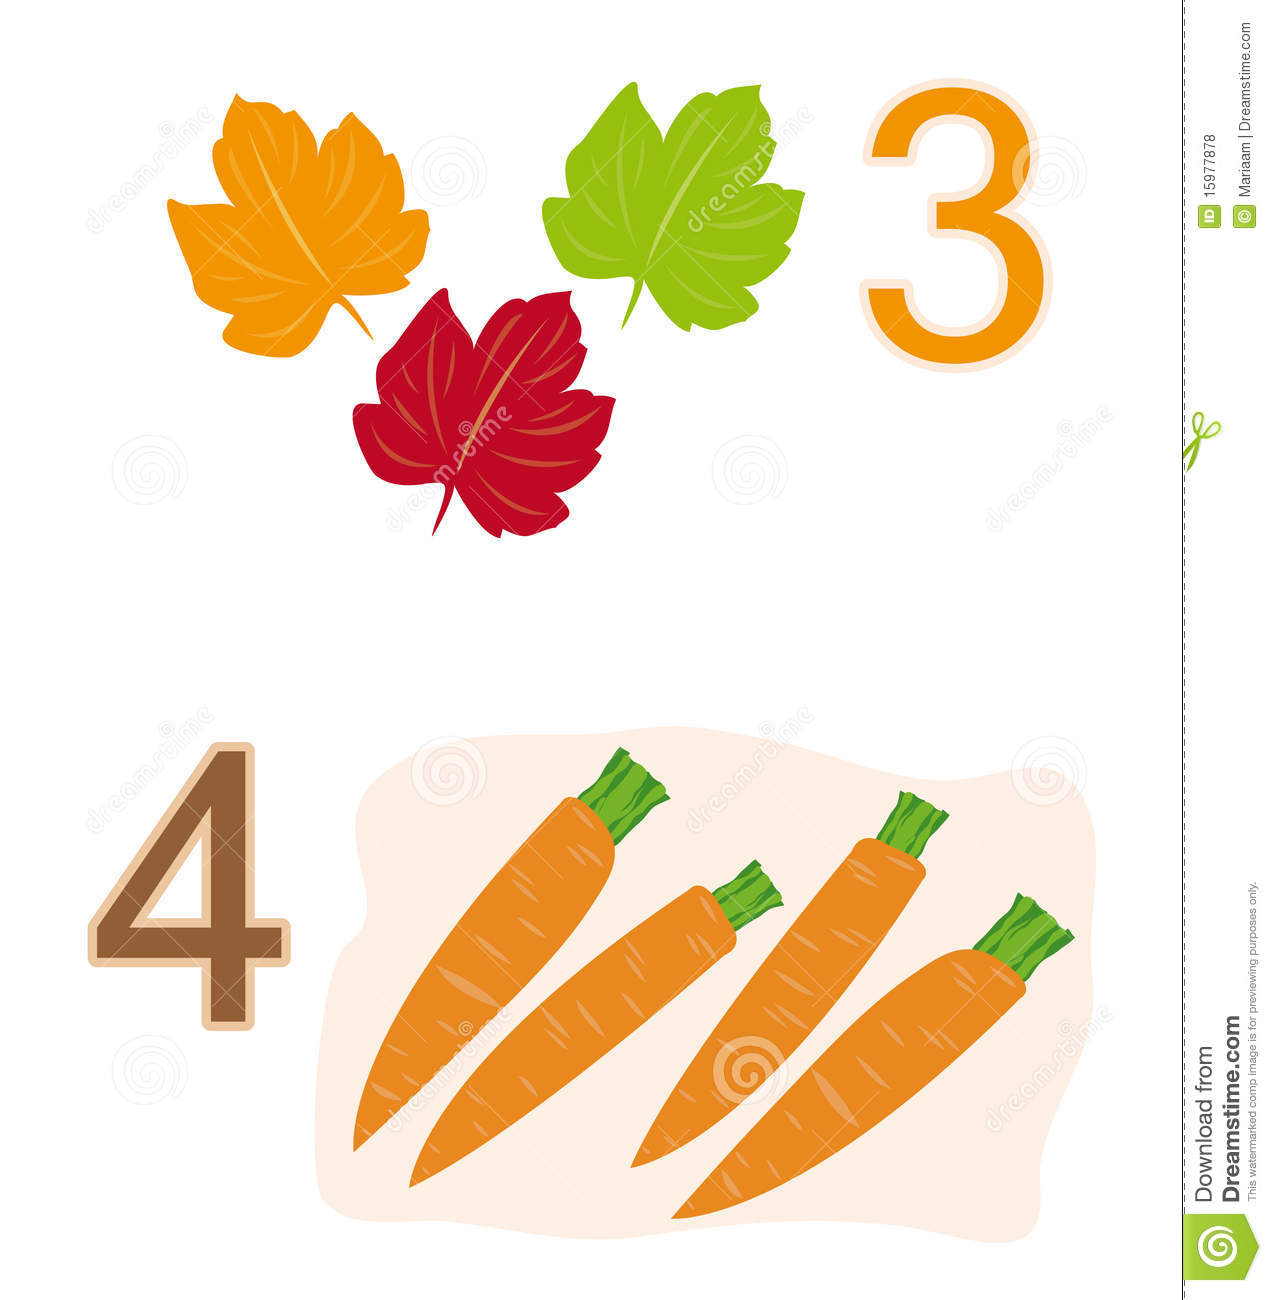 Counting game: number 3 & 4